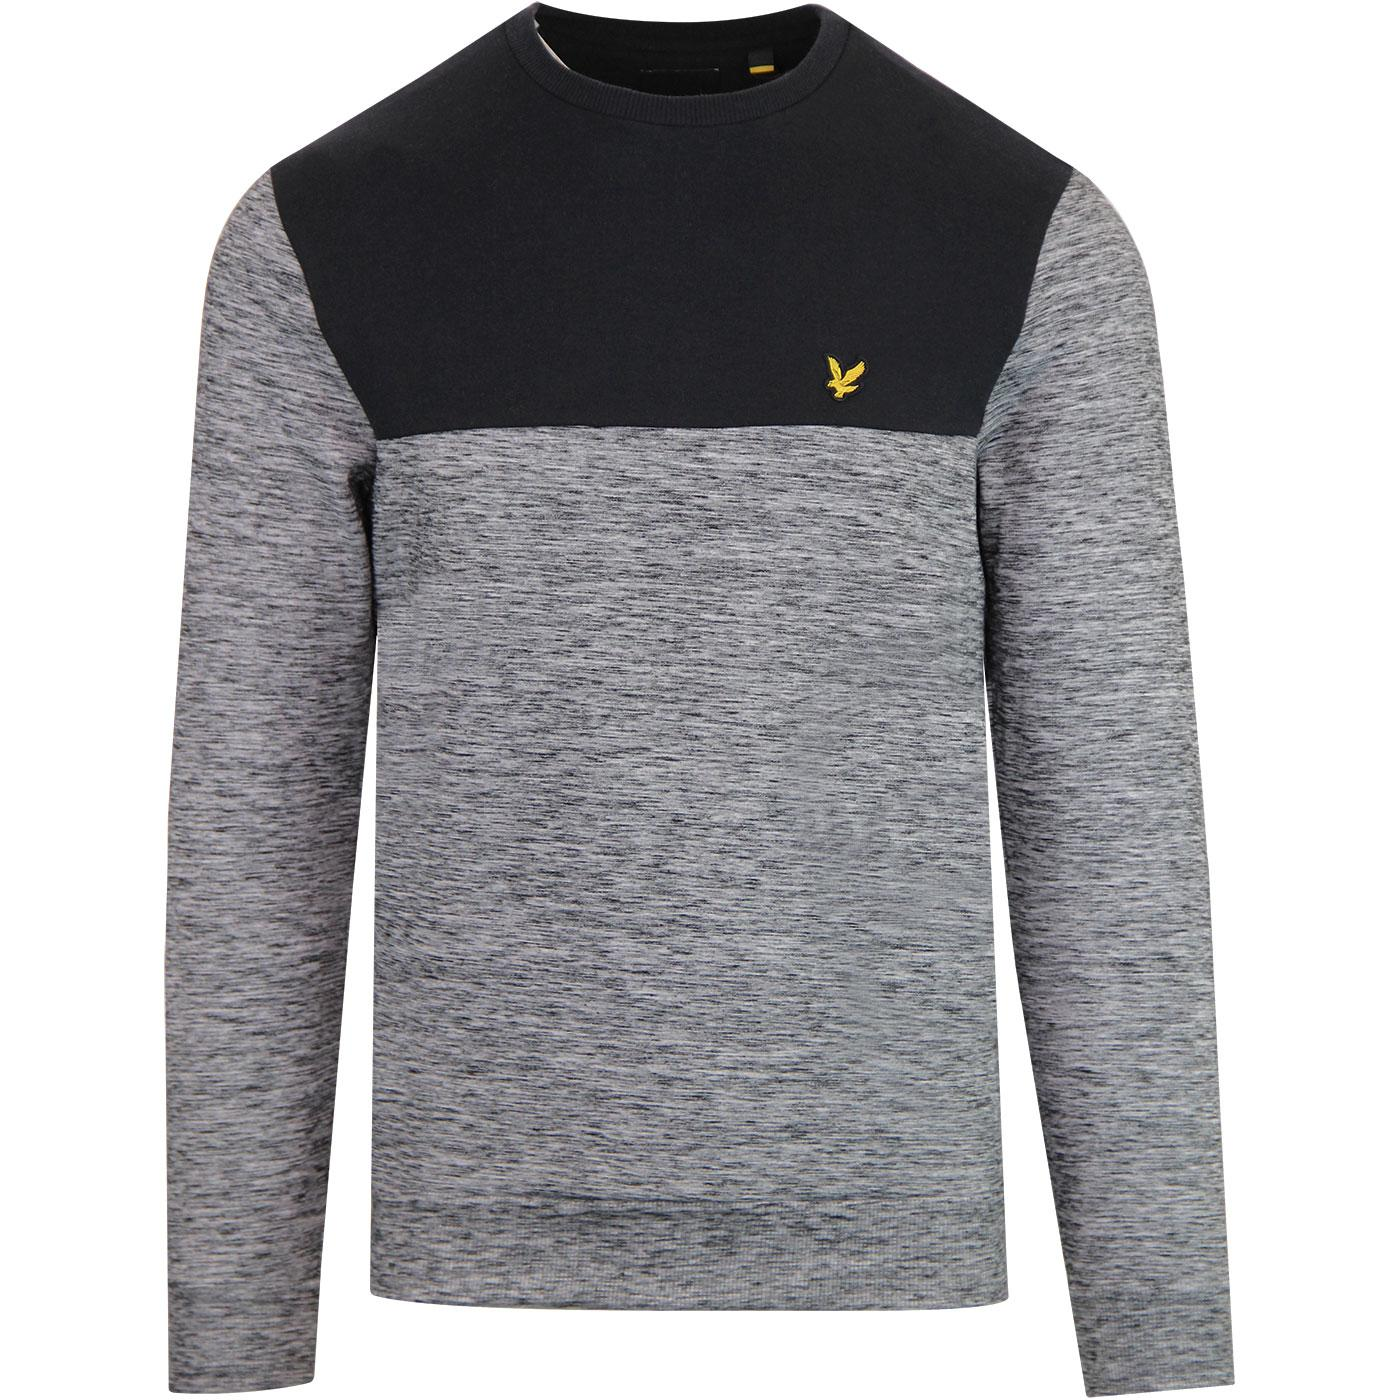 LYLE & SCOTT Retro Space Dye Sweatshirt TRUE BLACK